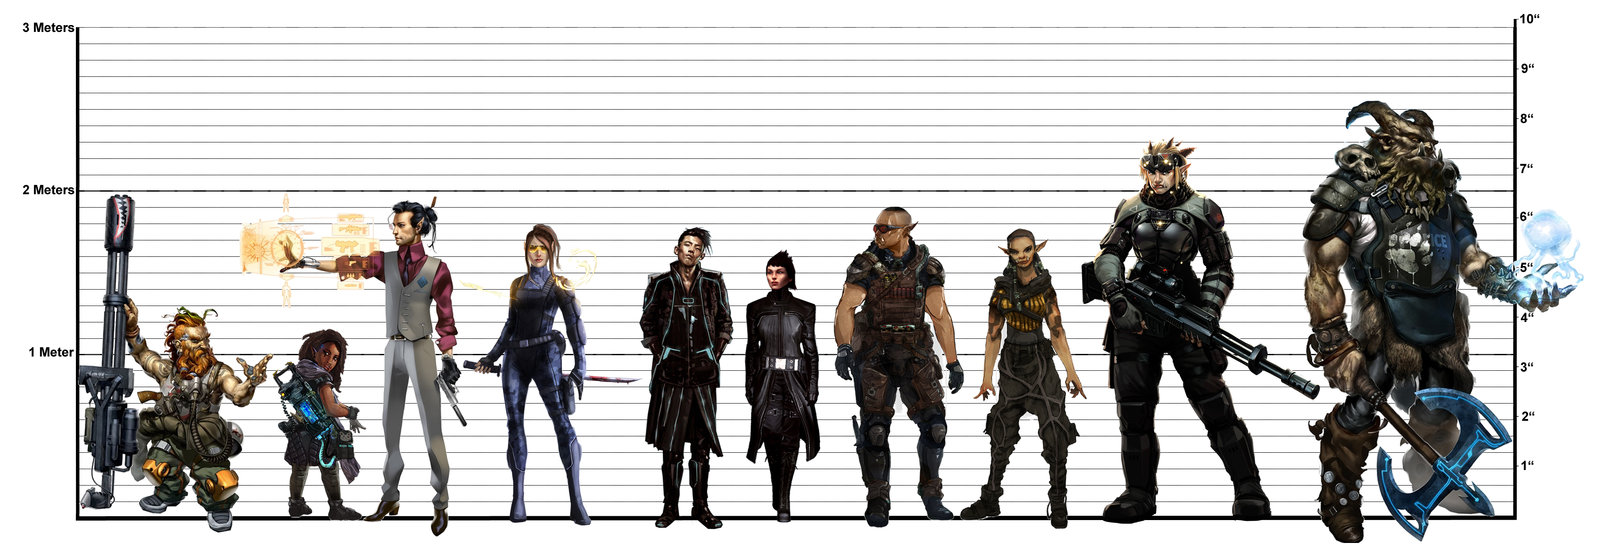 shadowrun_races_comparison_chart_by_dirkloechel-d8eqwrz.jpg